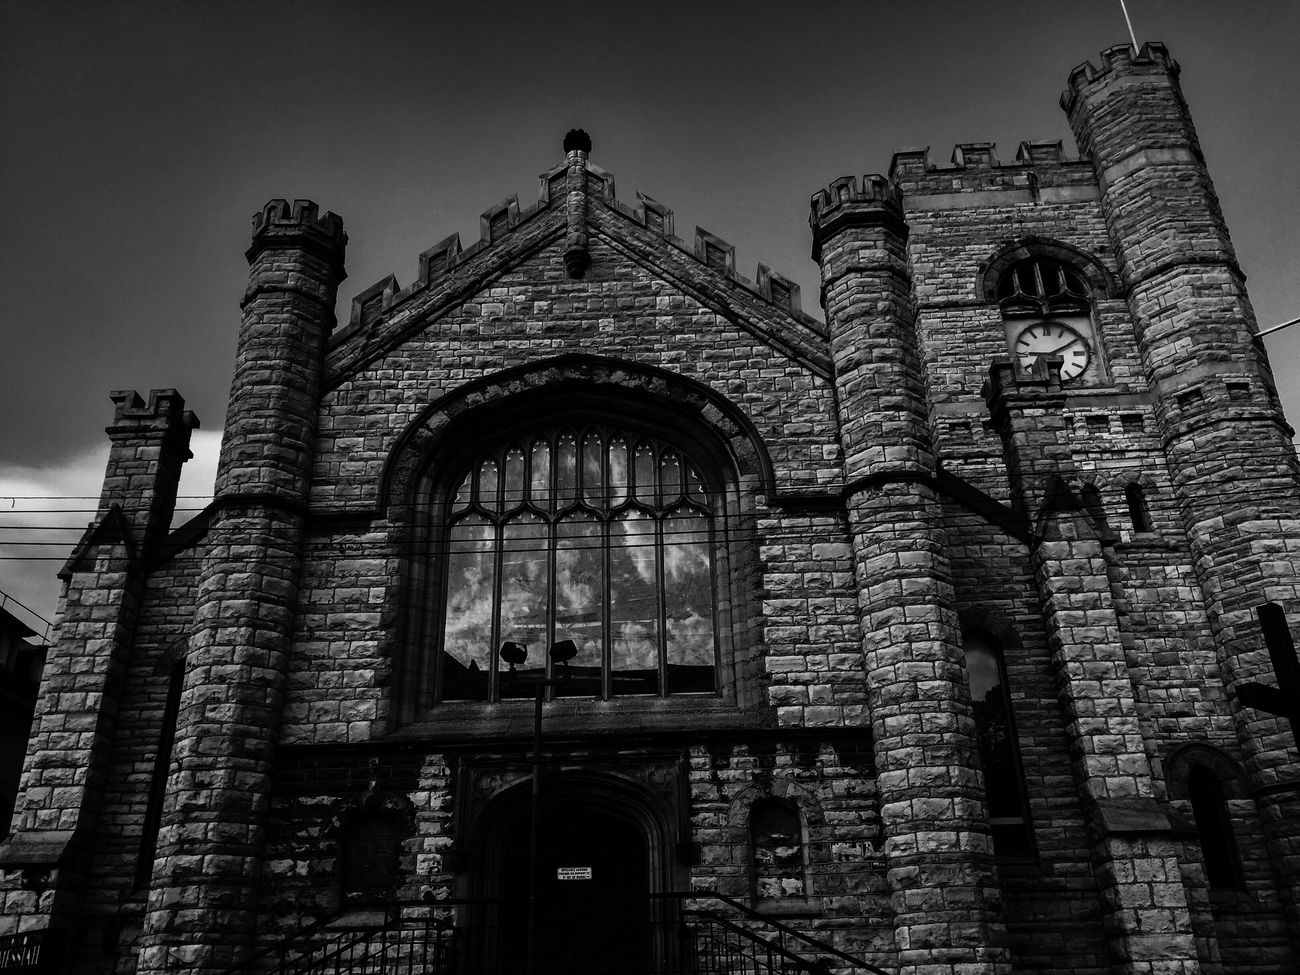 Hope all is sound friends, just pop'n in but, will be in force in the coming days...njoy Tuesday. Architecture Built Structure Low Angle View Building Exterior Arch History Sky Church Historic Place Of Worship Architectural Feature Old My Favorite Place EyeEm Best Shots EE_Daily: Black And White Bw_collection Blackandwhite Black And White EyeEm Best Shots - Black + White Shootermag EyeEmBestPics Darkness Outdoors Light-Play Bw_lover